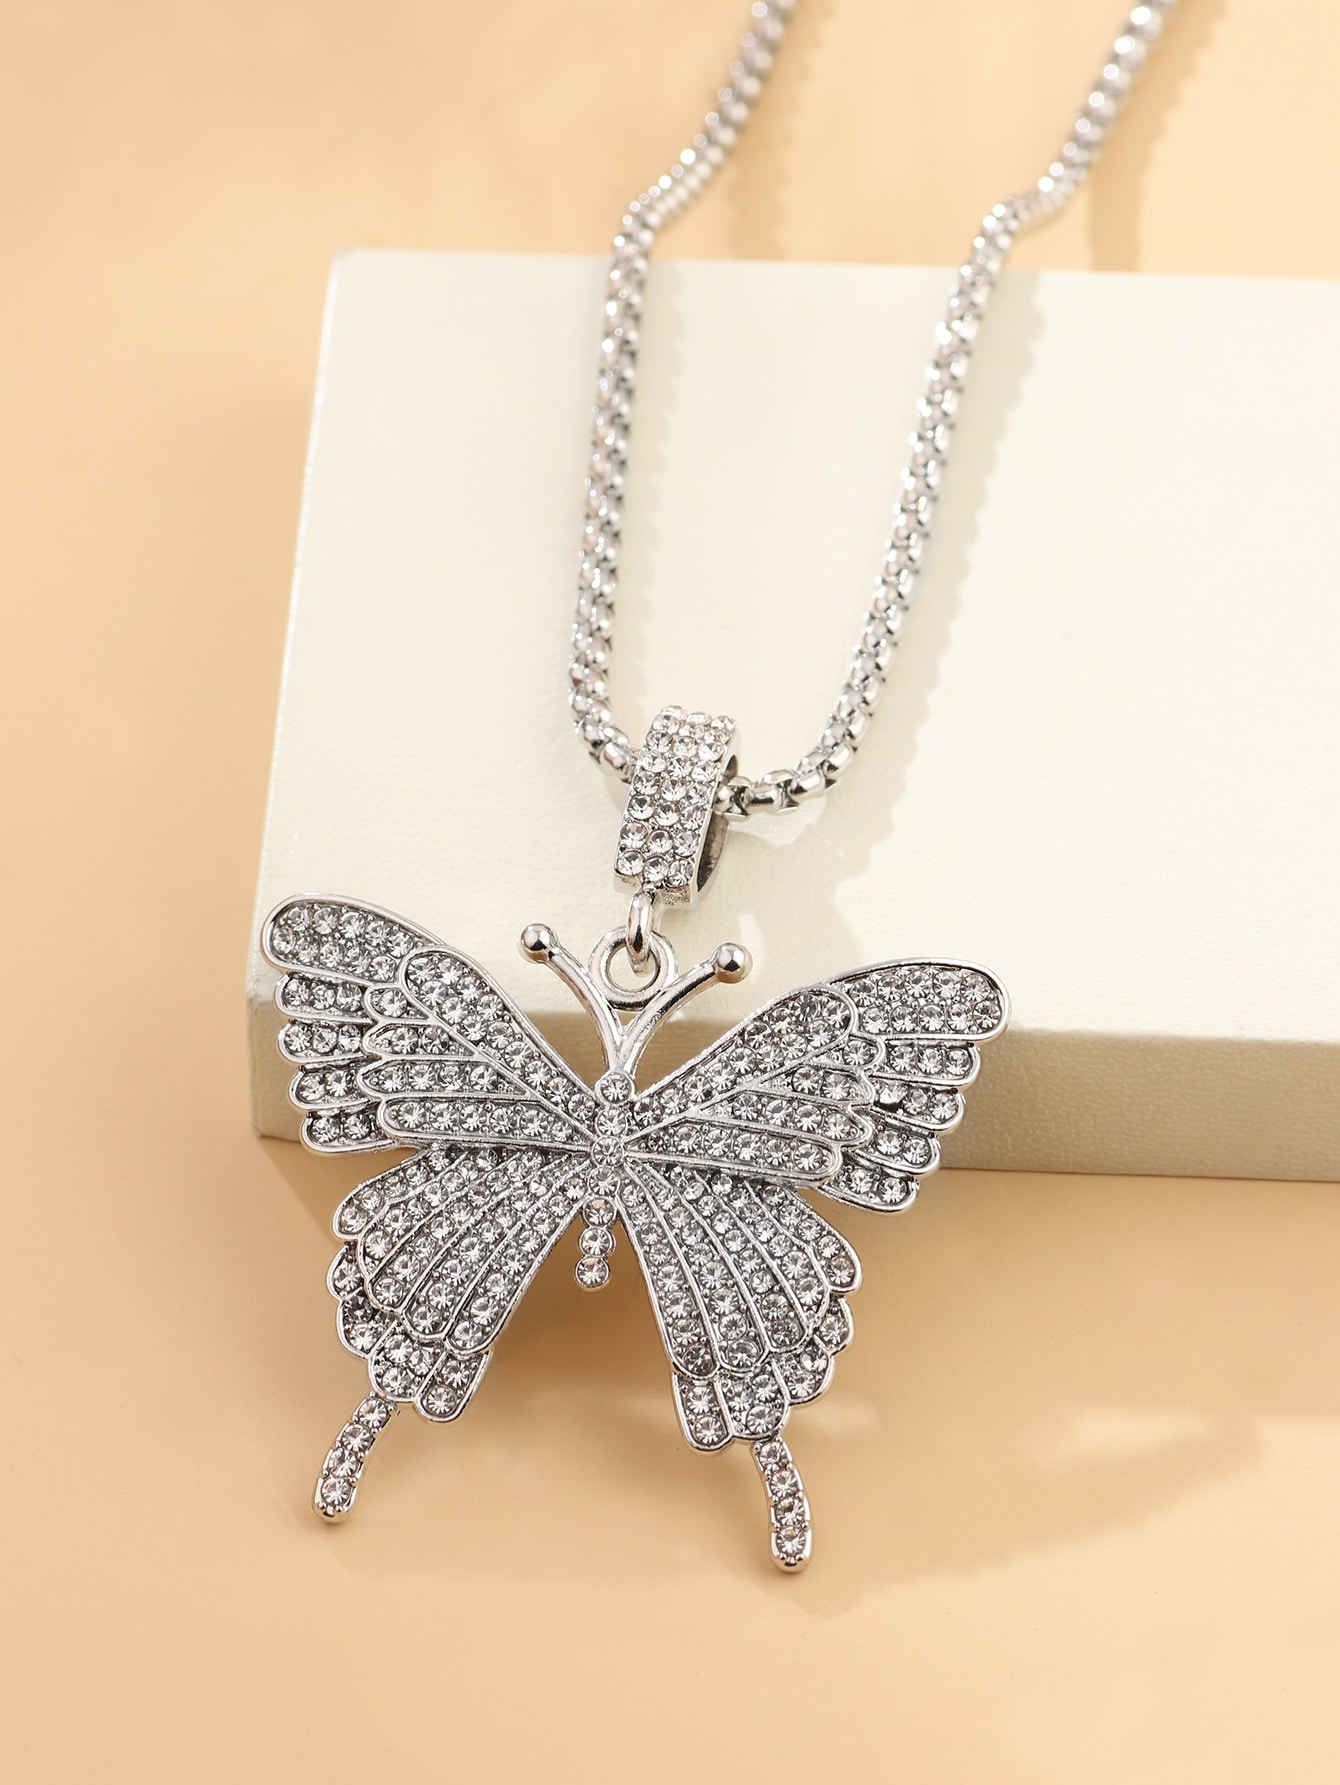 Rhinestone Decor Butterfly Charm Necklace thumbnail